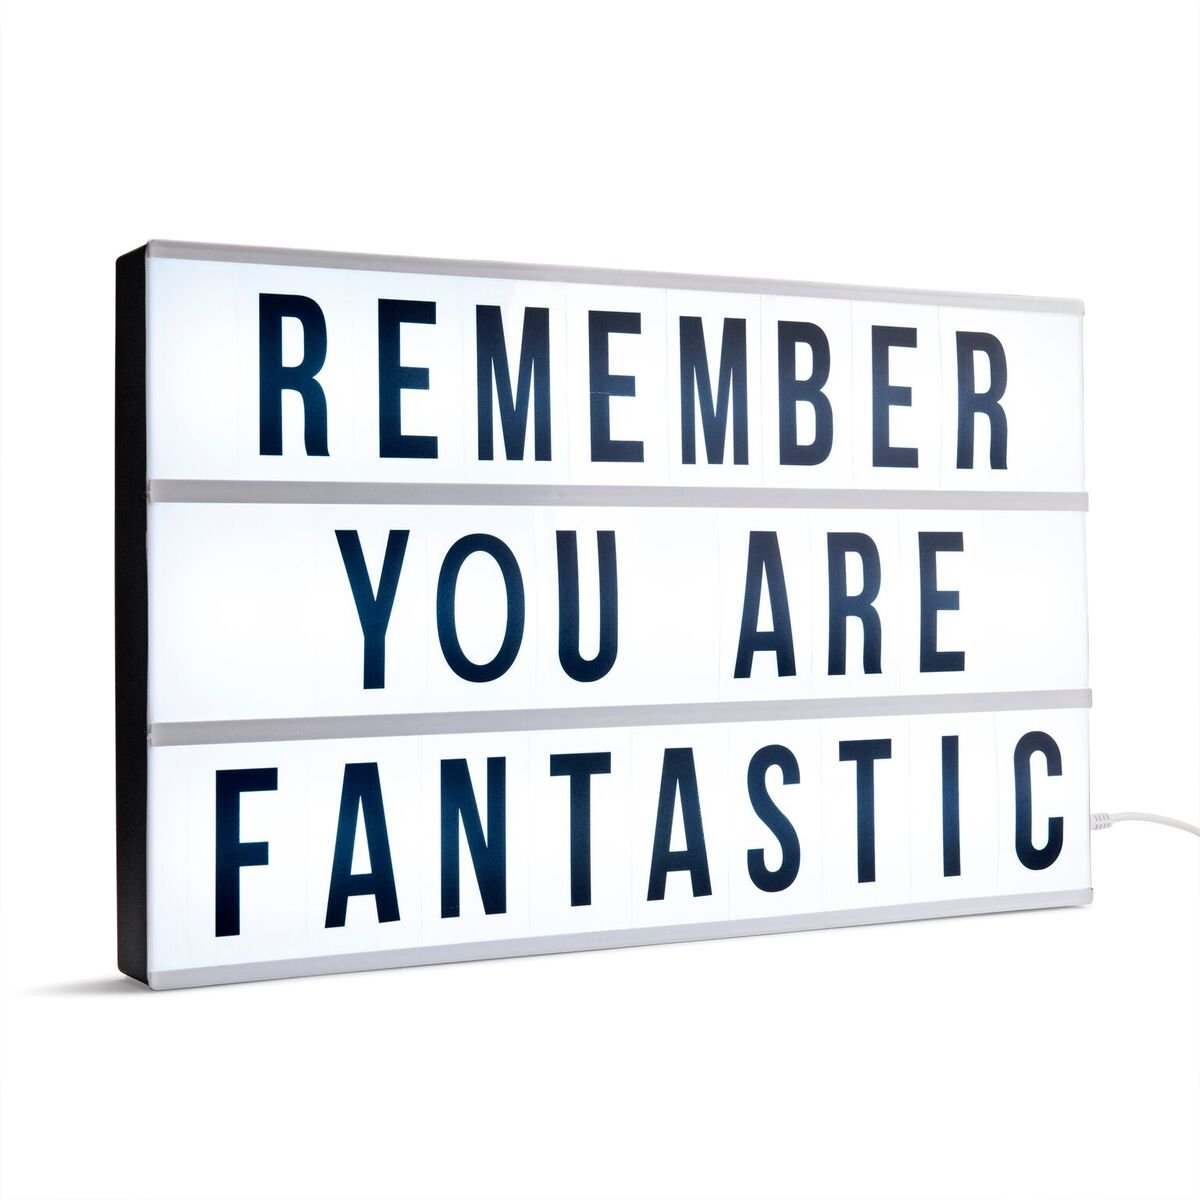 Premium Extra Large LED Cinematic Lightbox- Bigger Than A3 - Light up Box & Changeable Message Board with 85 Numbers, Letters and Characters for Signs, Quotes, Gifts, Weddings & Decorations Paramount Buy